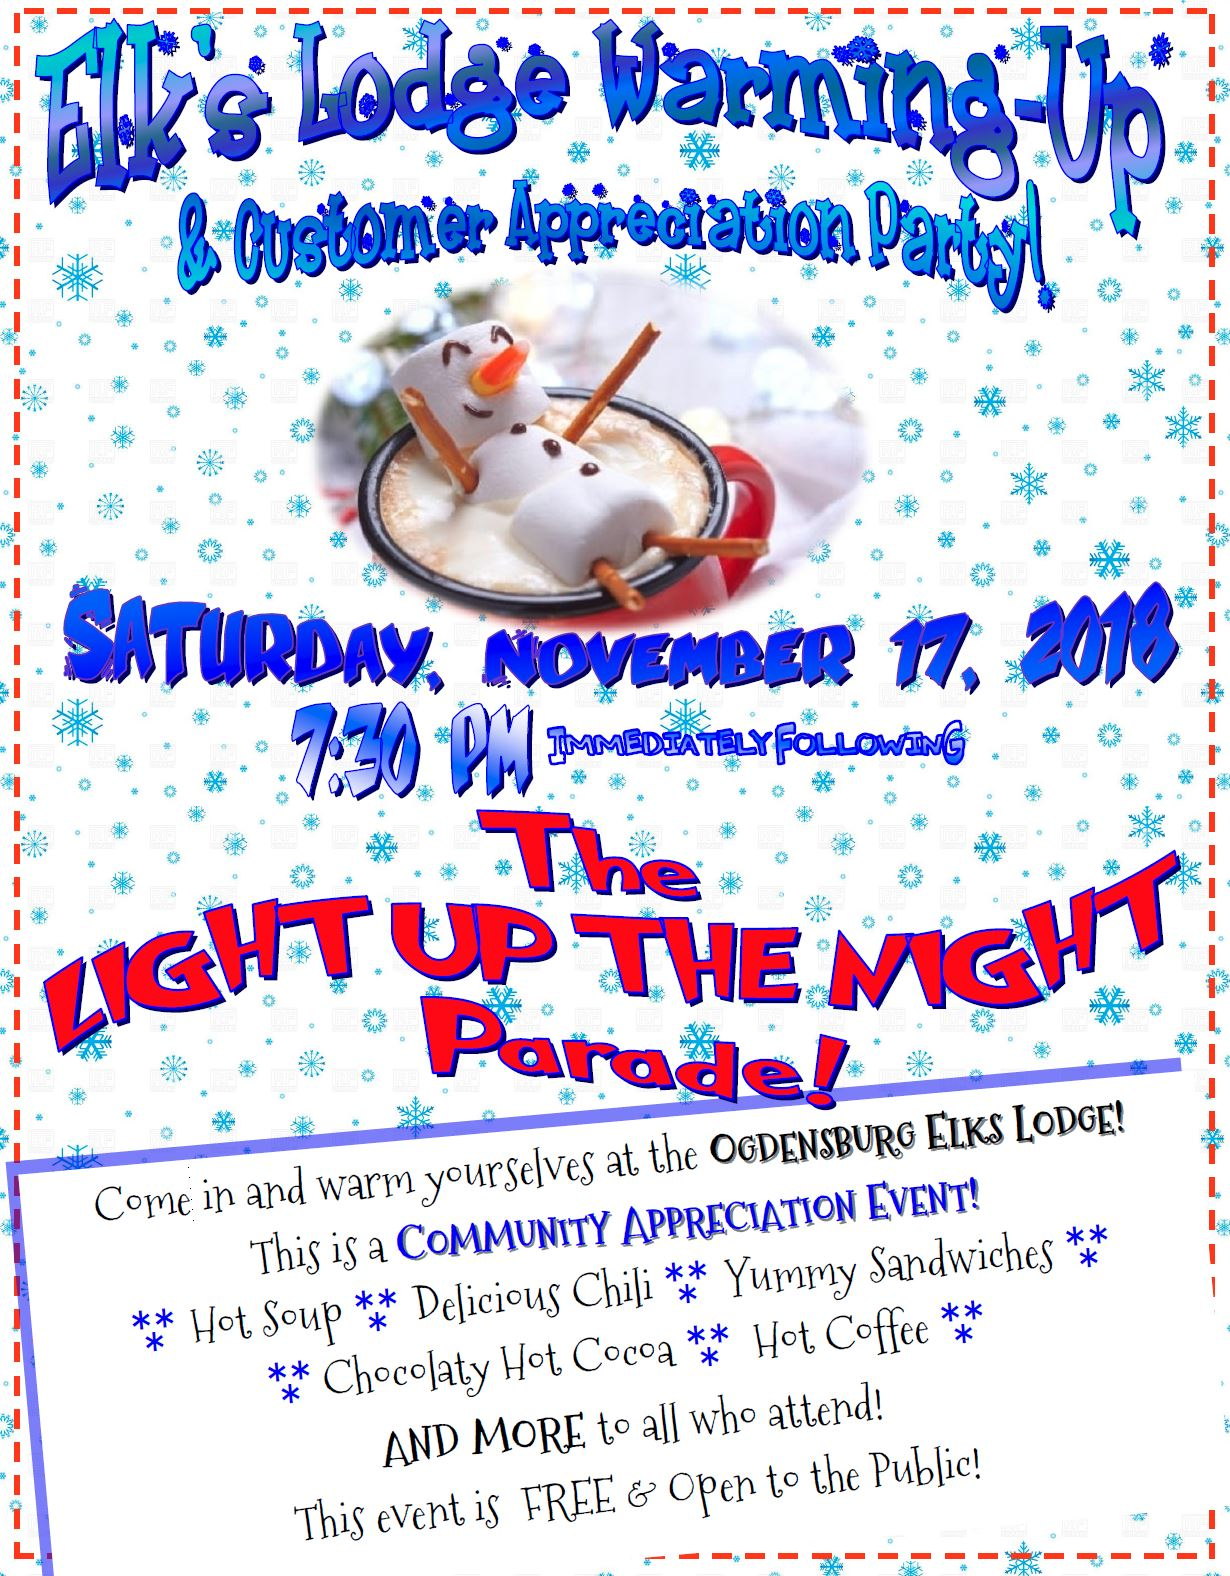 On Saturday, November 17, 2018, following the Light Up The Night Parade at 7:30! Come in and warm yourselves at the Ogdensburg Elks Lodge with hot soup, delicious chili, yummy sandwiches, chocolaty hot cocoa, hot coffee and more. Free and open to the public!